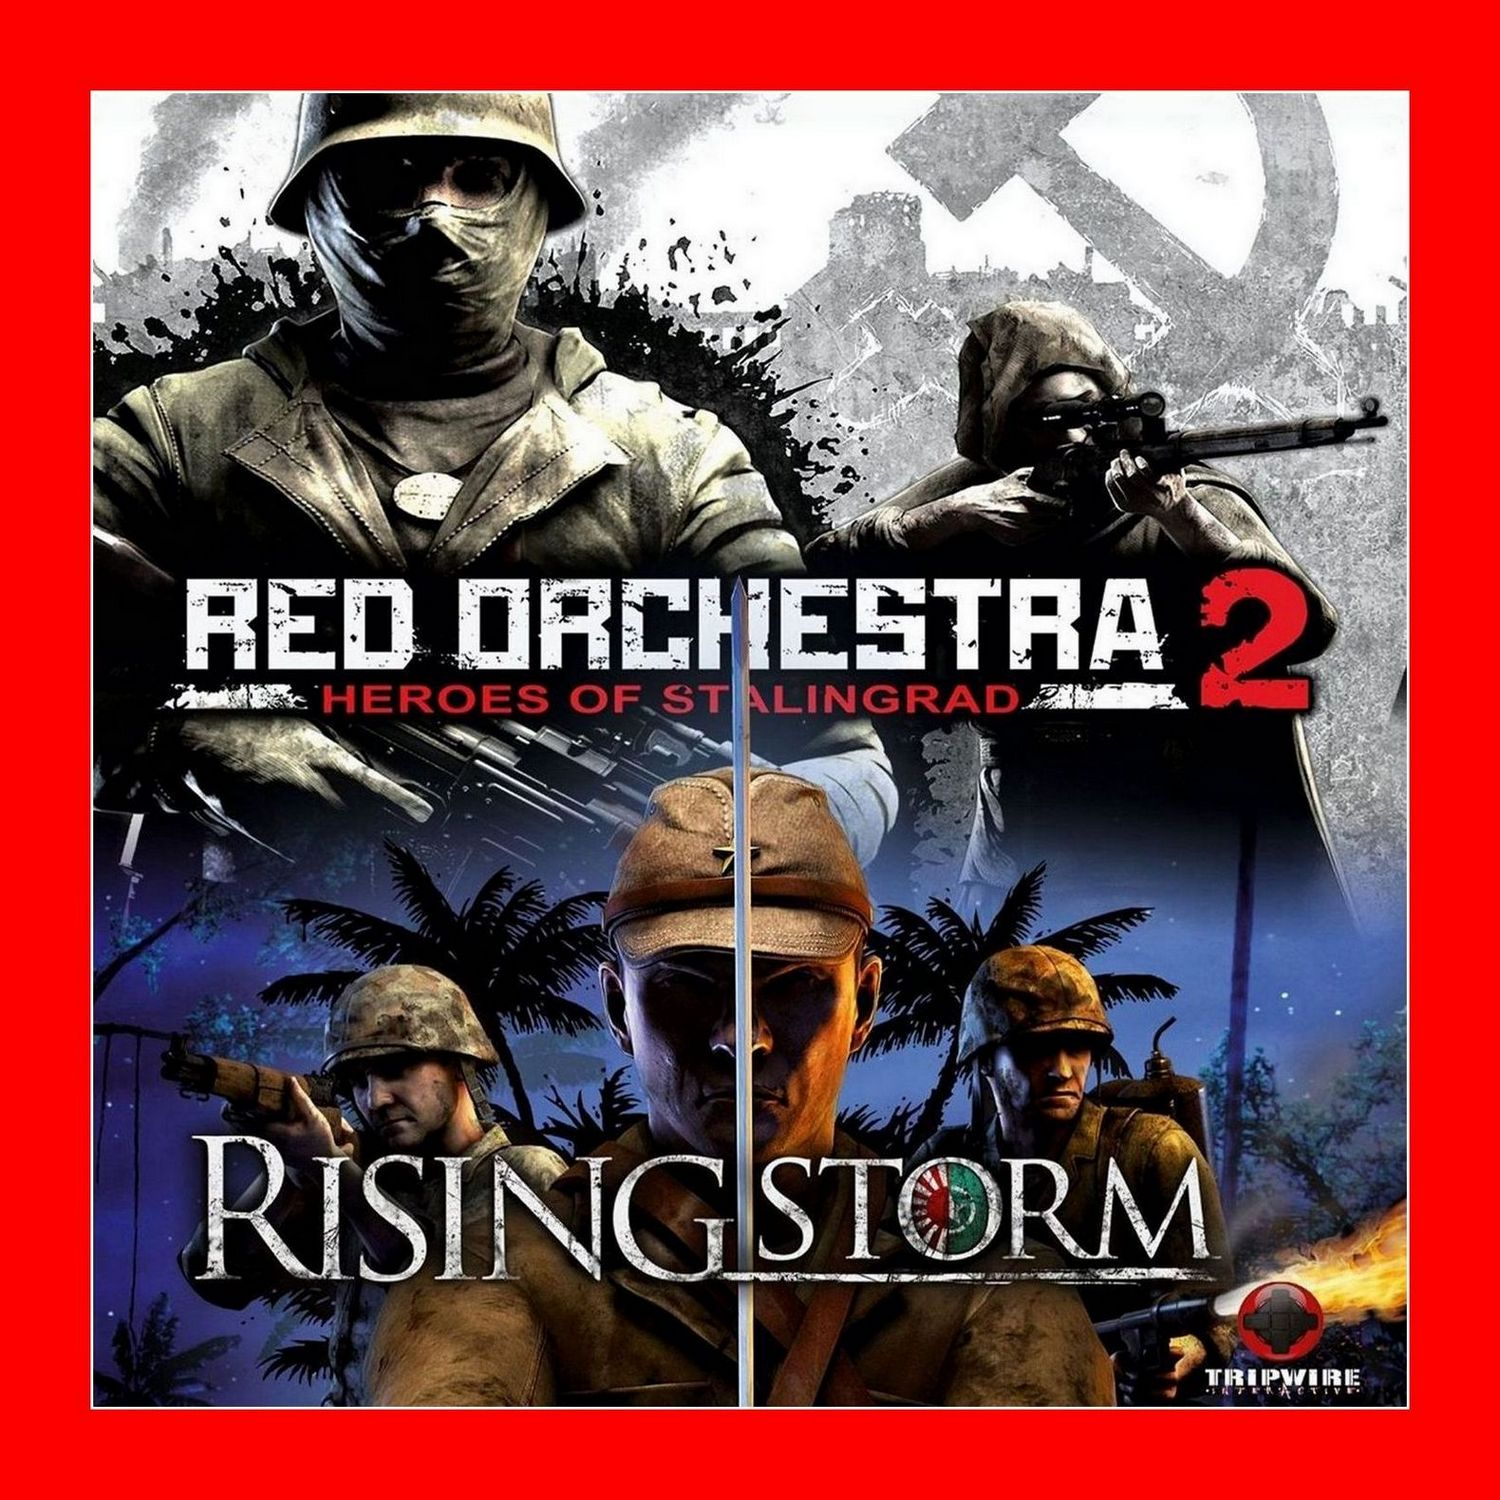 Red Orchestra 2 + Rising Storm GOTY | STEAM KEY GLOBAL